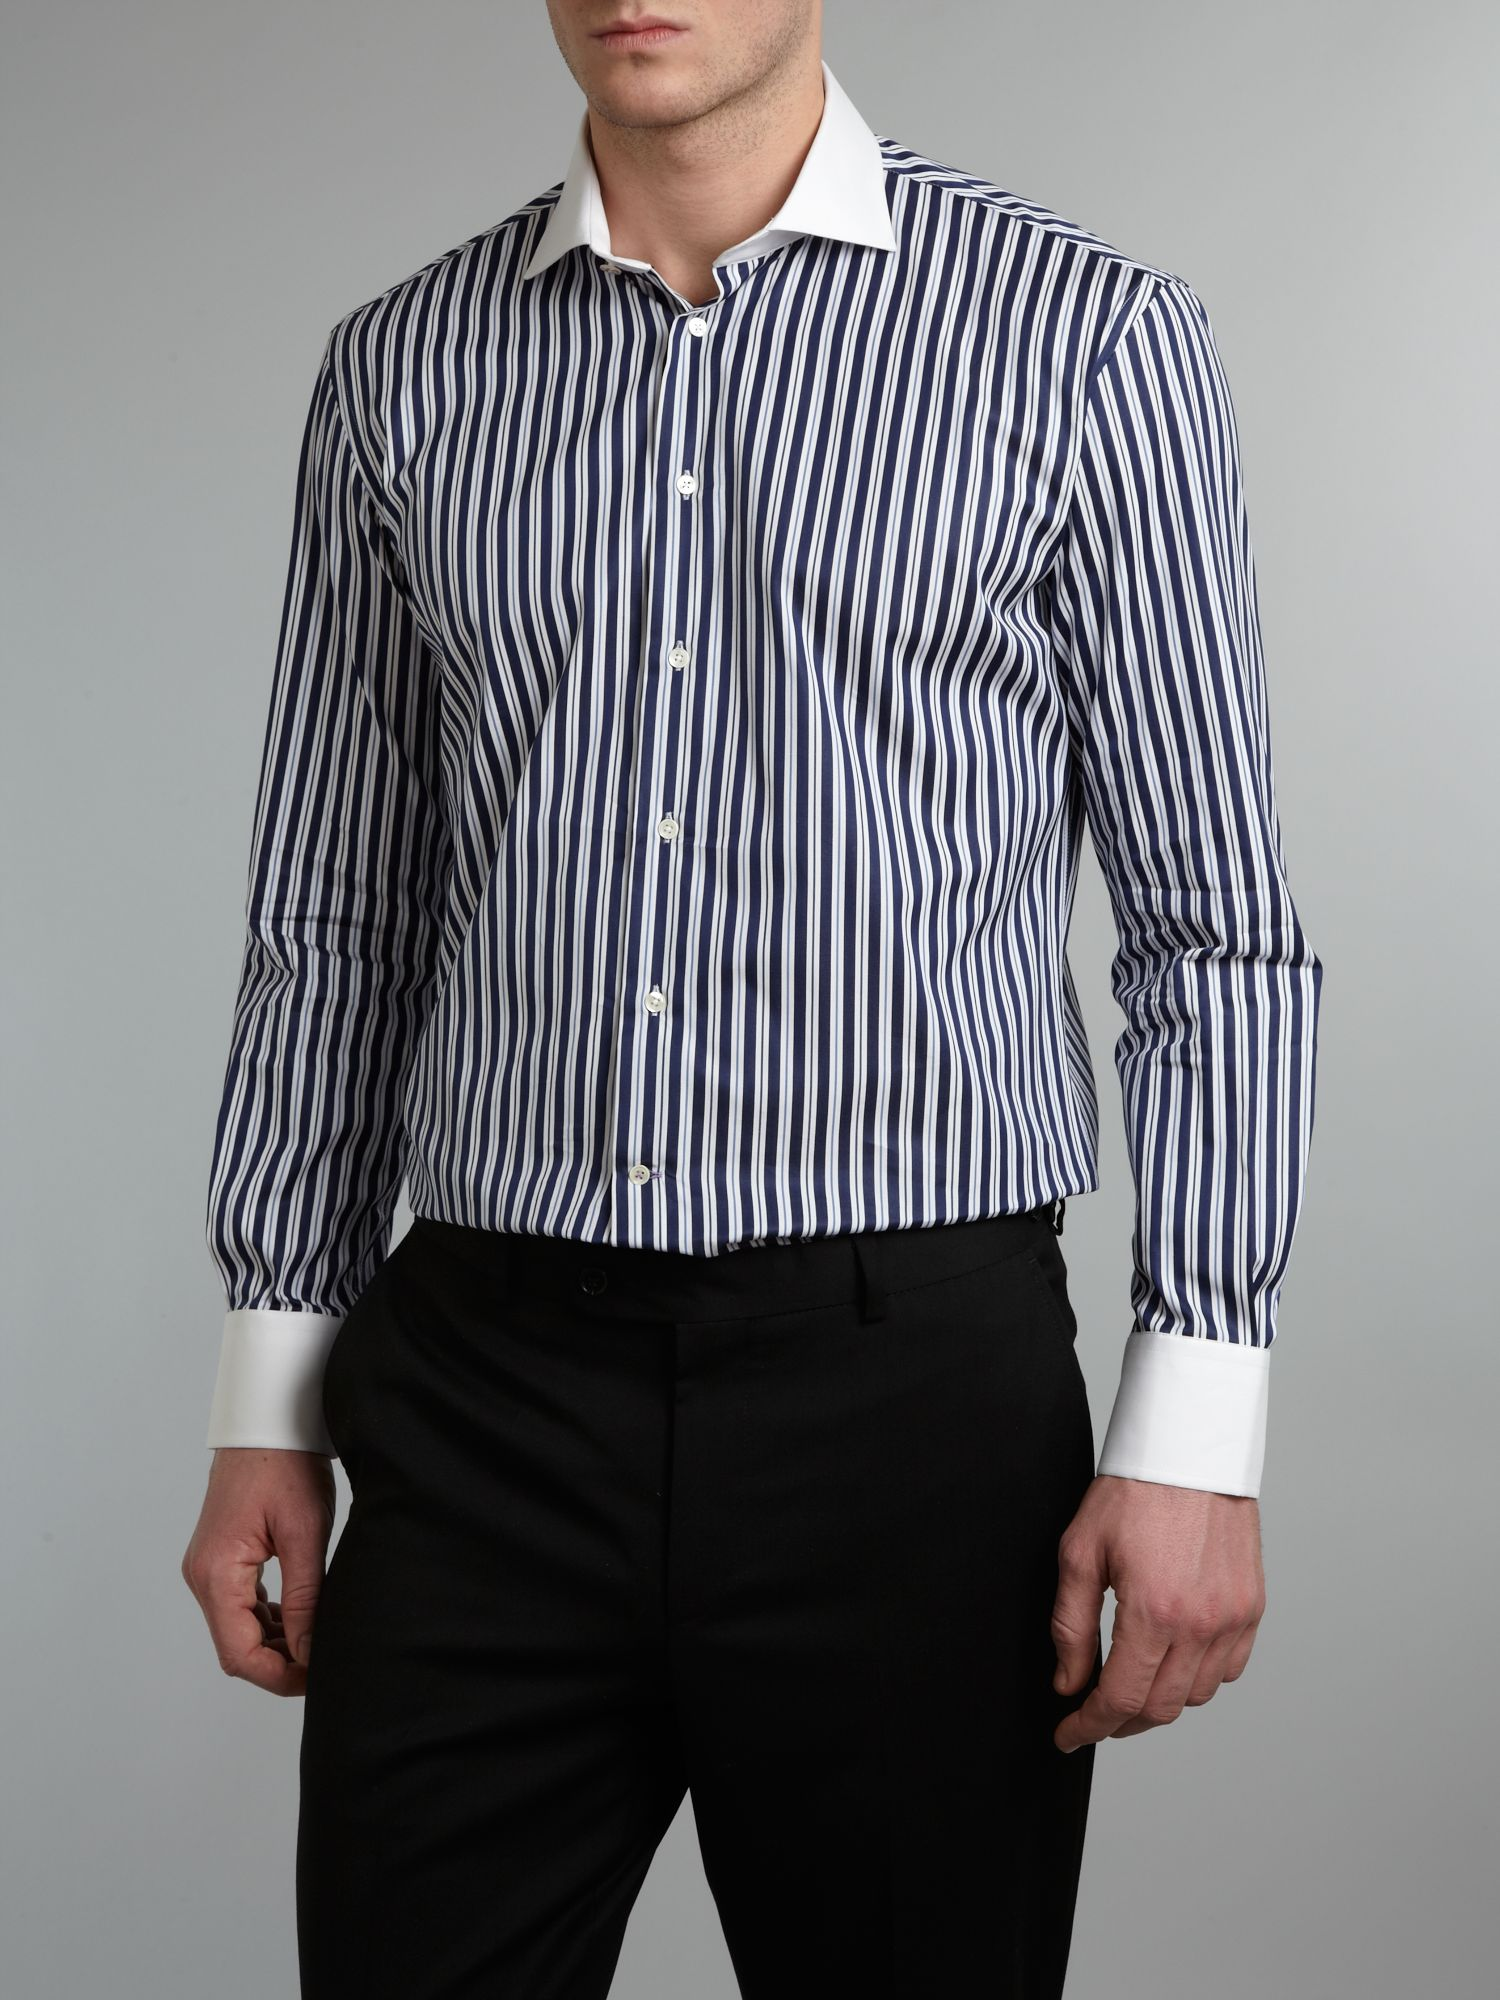 Without prejudice sh stripe shirt white collar in black for Blue and white striped shirt with white collar